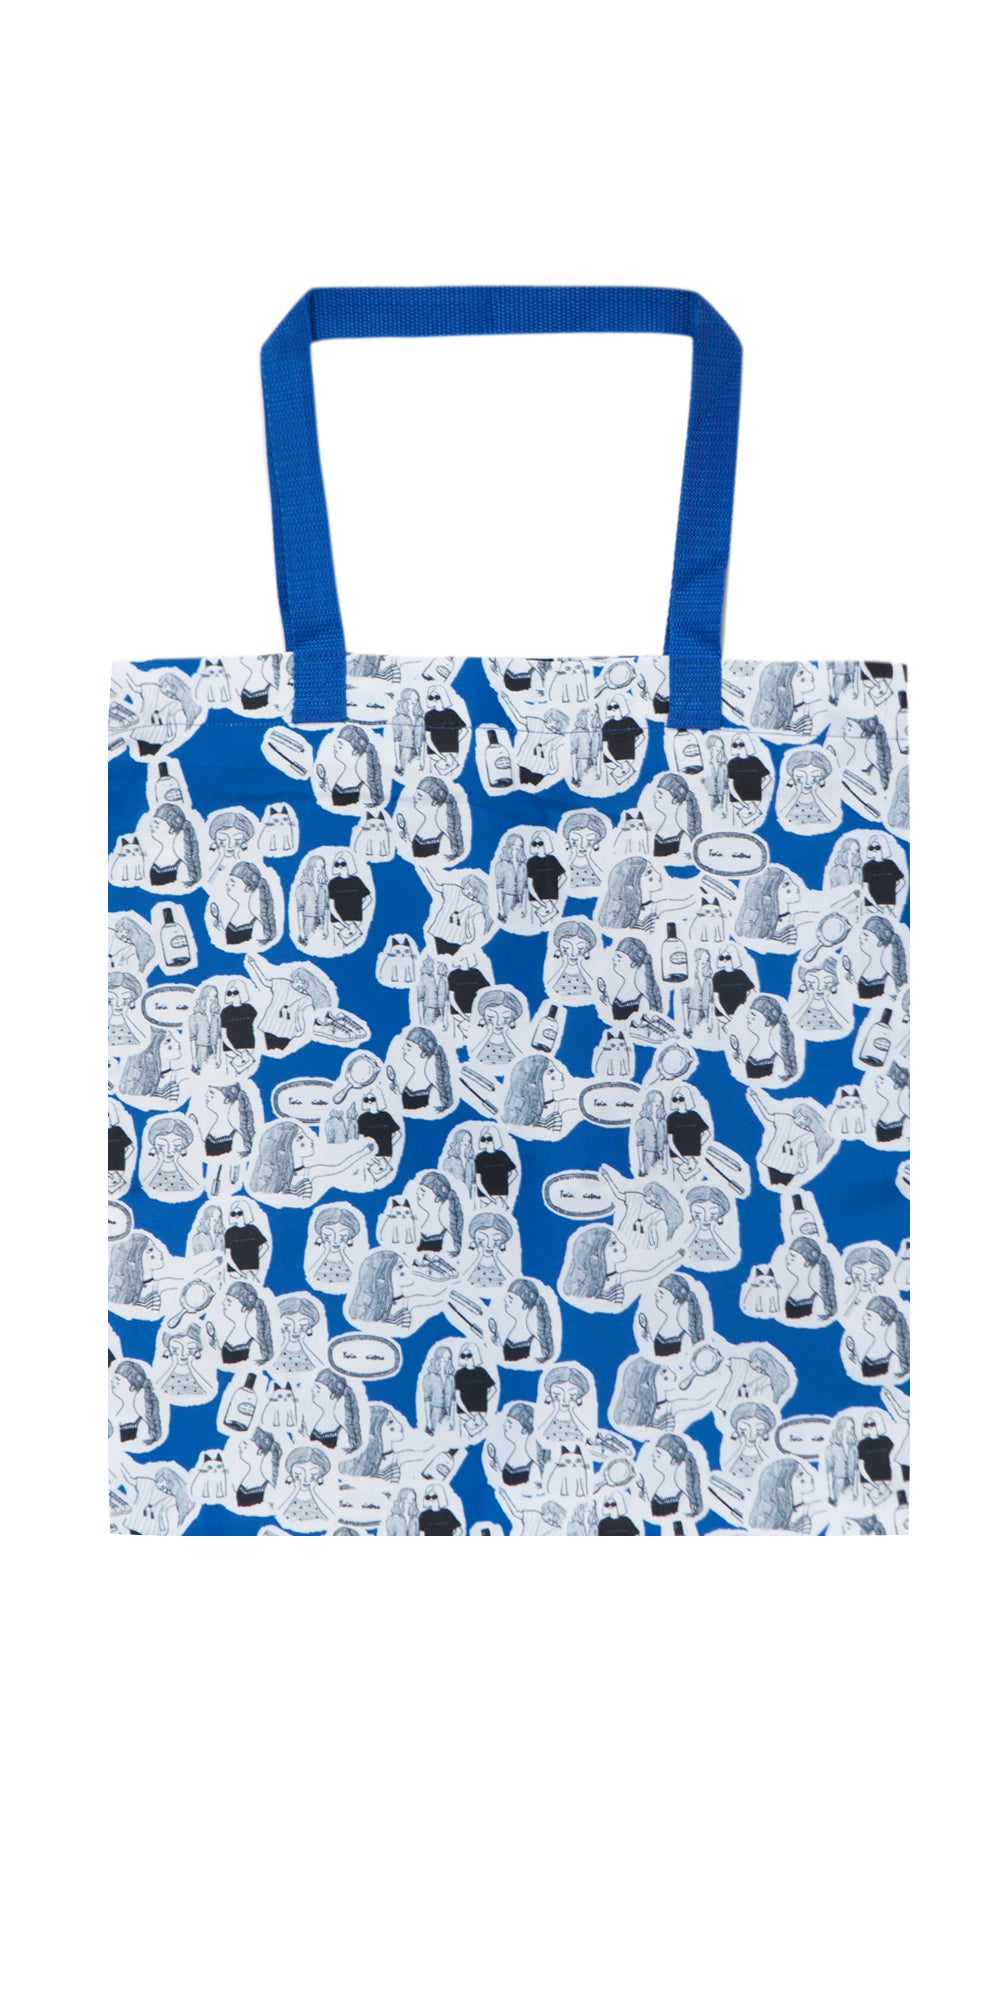 Blue and White Collages Eco Friendly Tote Bag